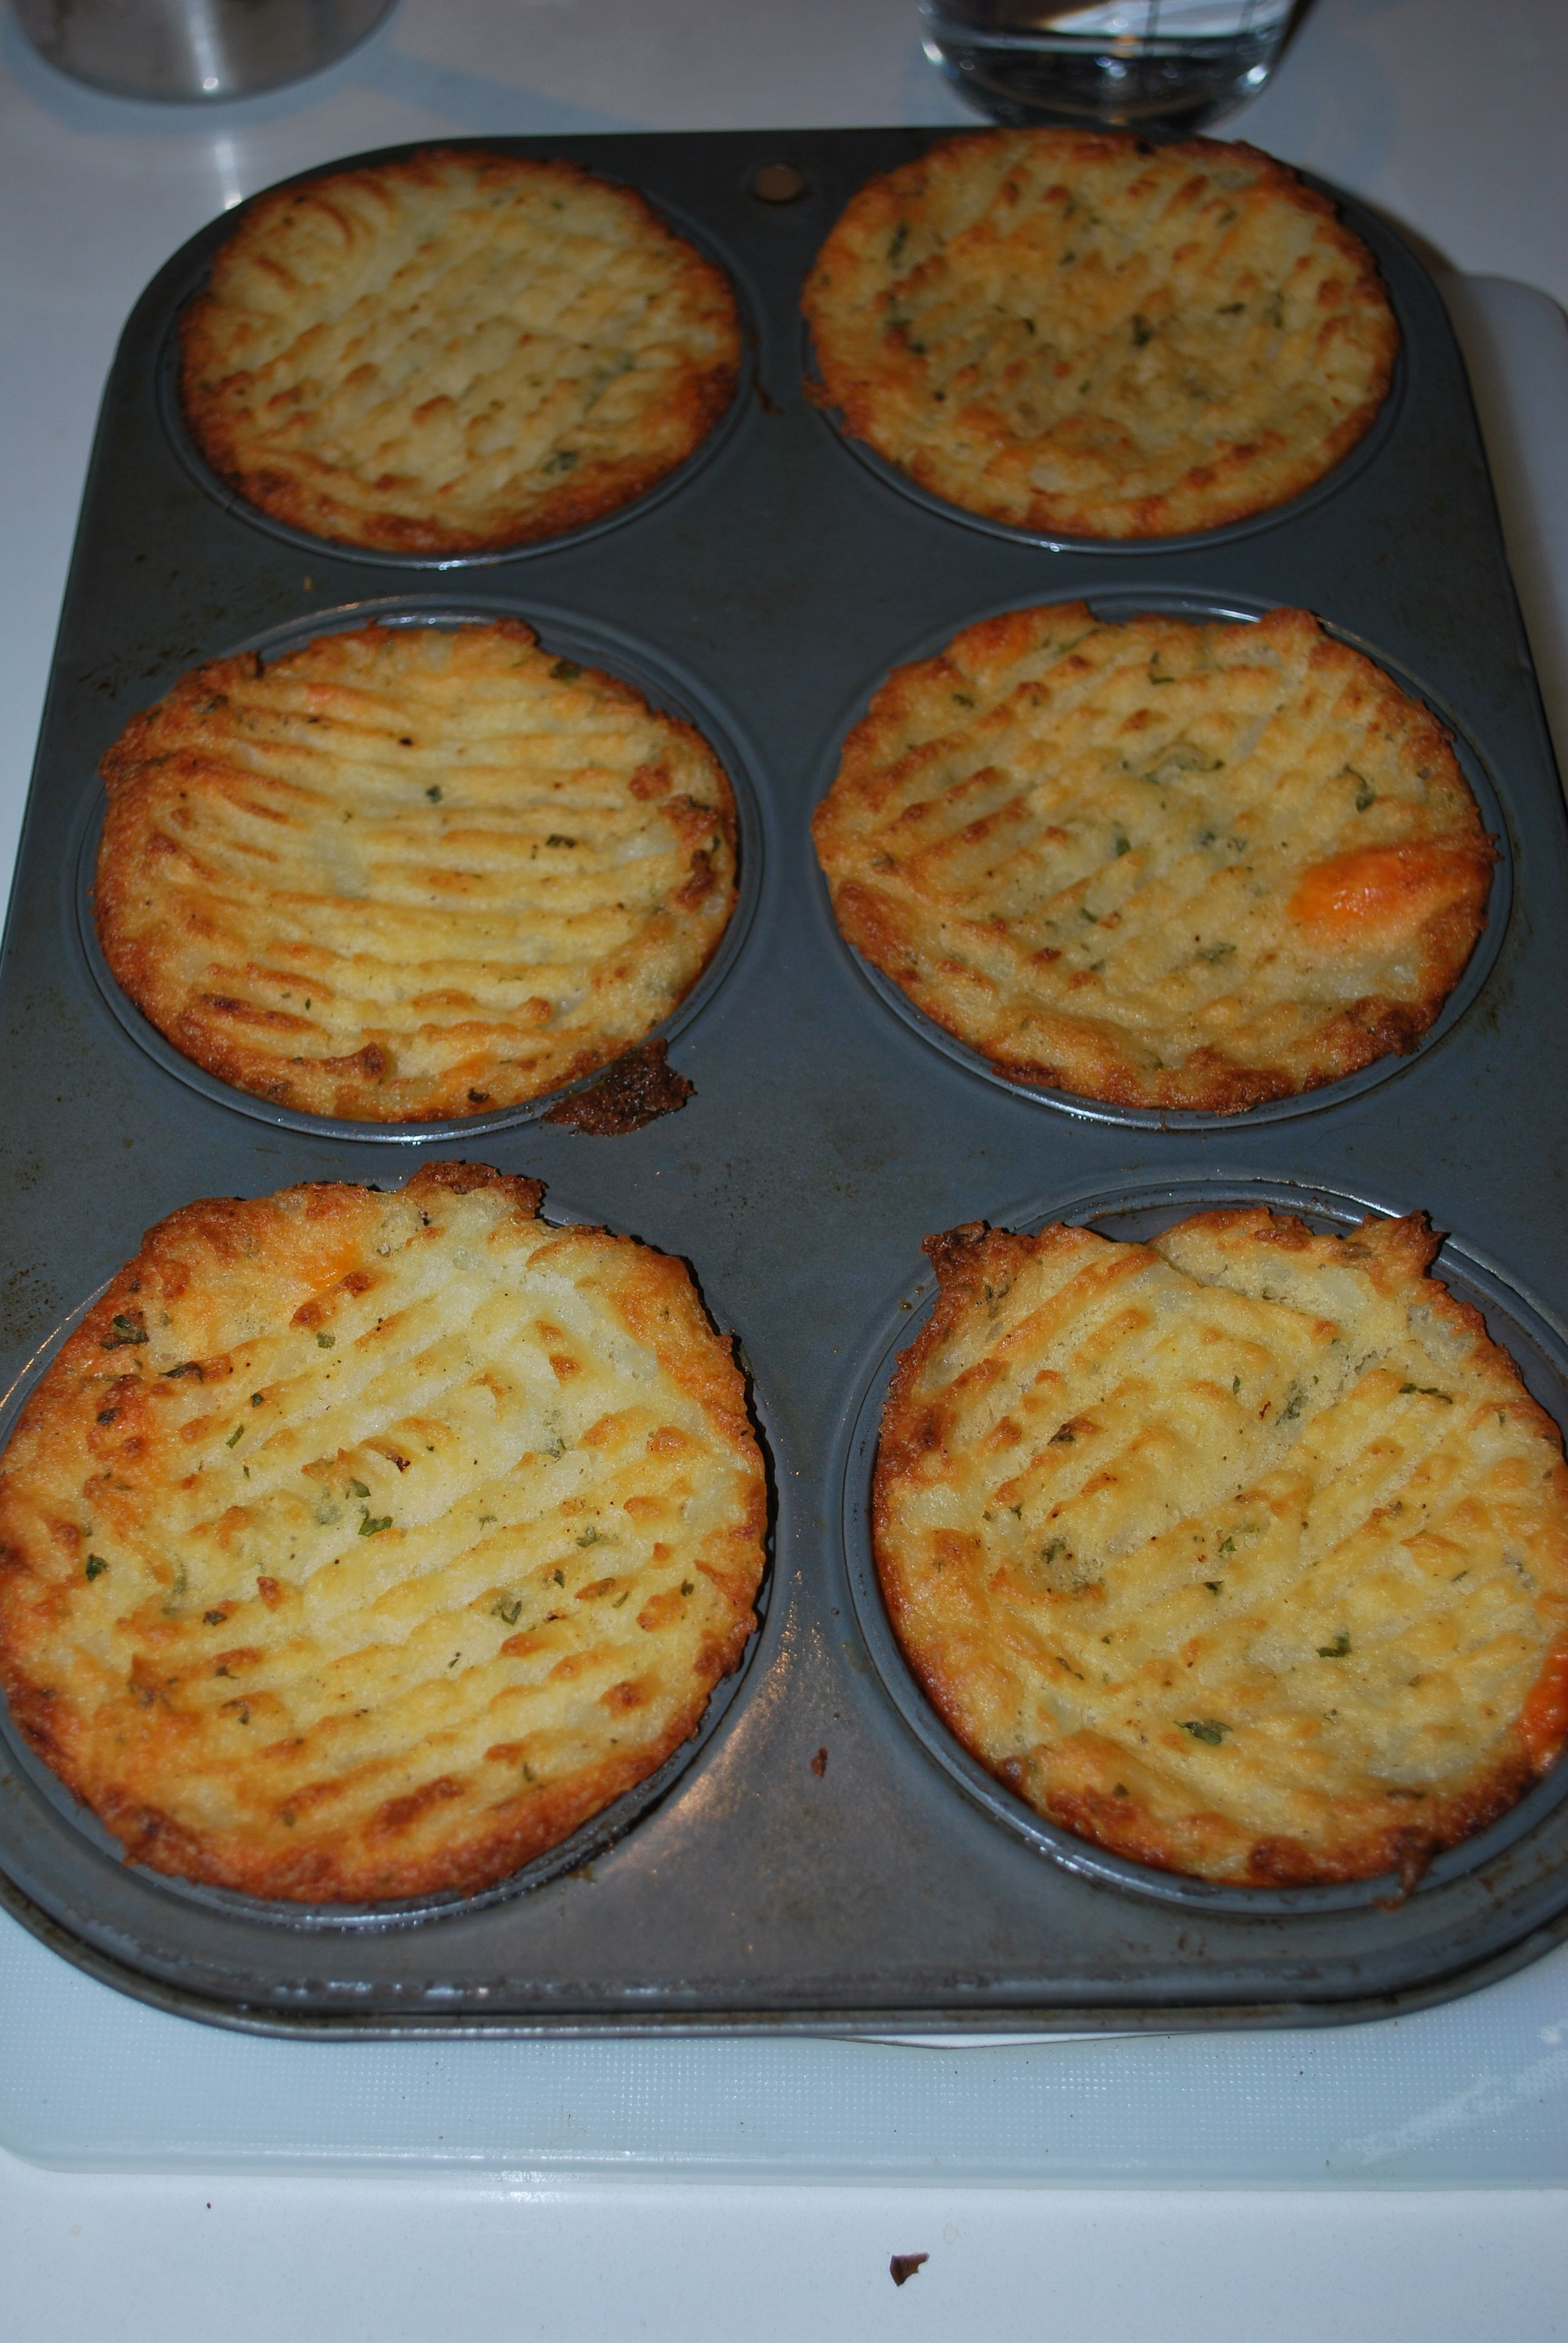 Just mash potatoes plain with vegan butter or you can add yummy ingredients like cheese, parsley, green onion etc.  Stuff in to a greased muffin tin, run a fork along the top and brush with melted butter or olive oil.  Bake at 375 degrees or until tops are crispy and golden.  Easy